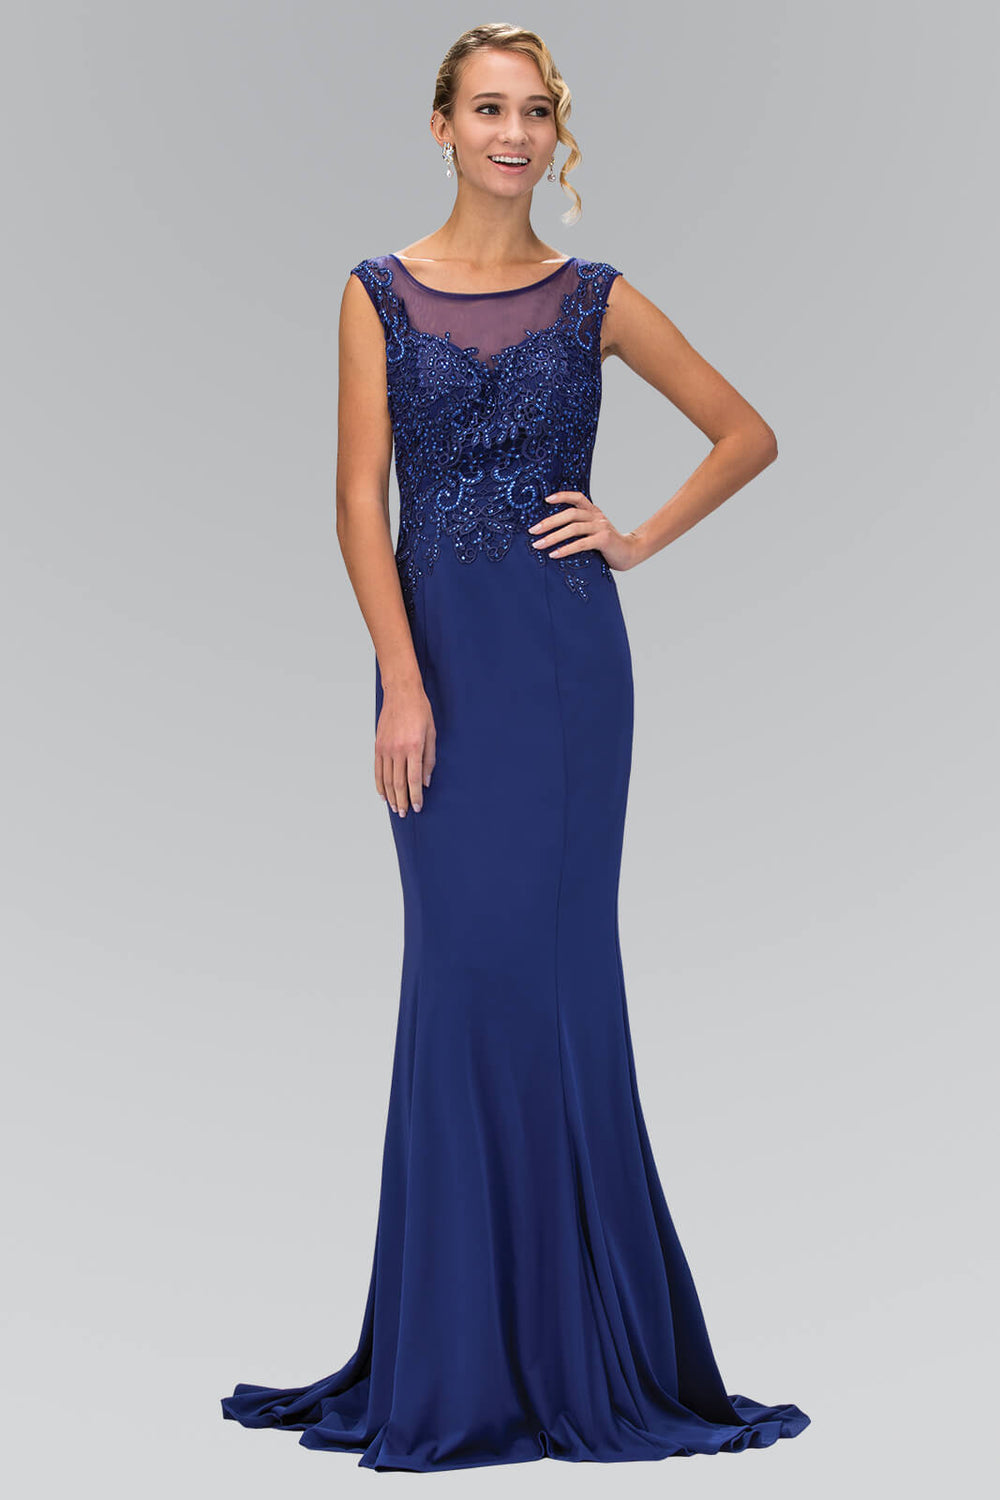 Sleeveless Rome Jersey Long Prom Dress Formal - The Dress Outlet Royal Blue